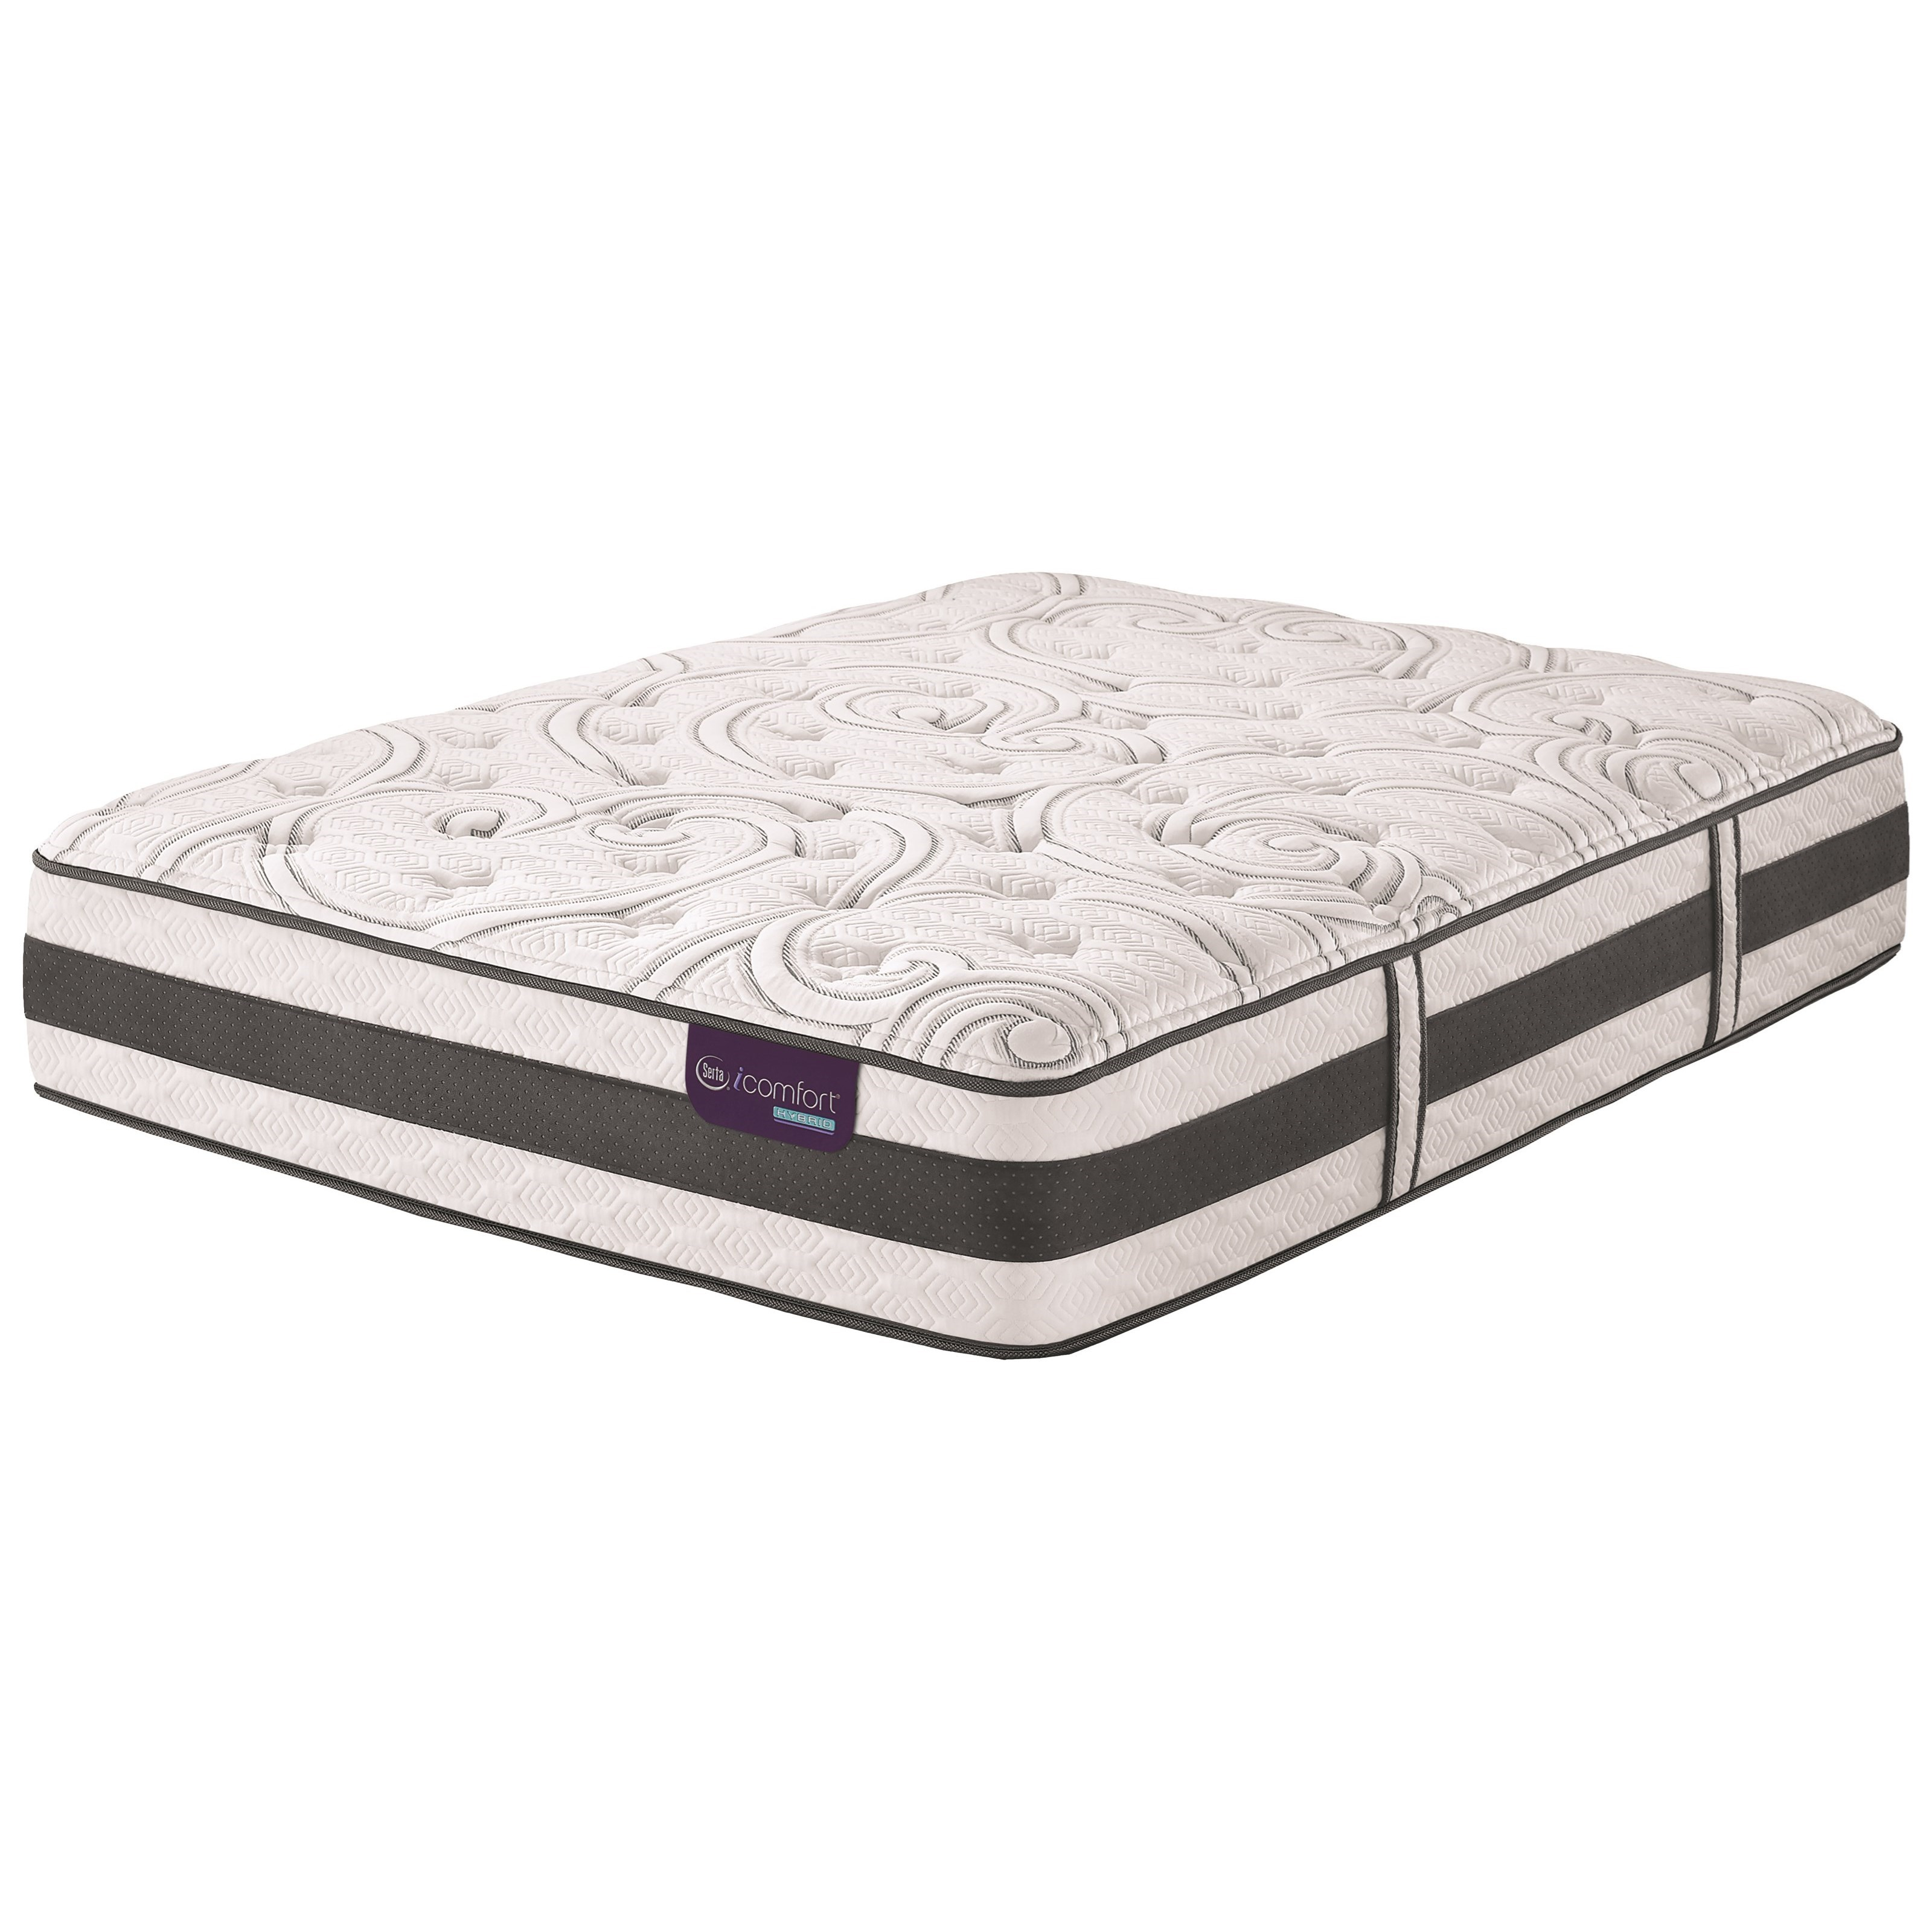 Serta iComfort Hybrid Recognition King Plush Hybrid Quilted Mattress - Item Number: RecgntnPlush-K